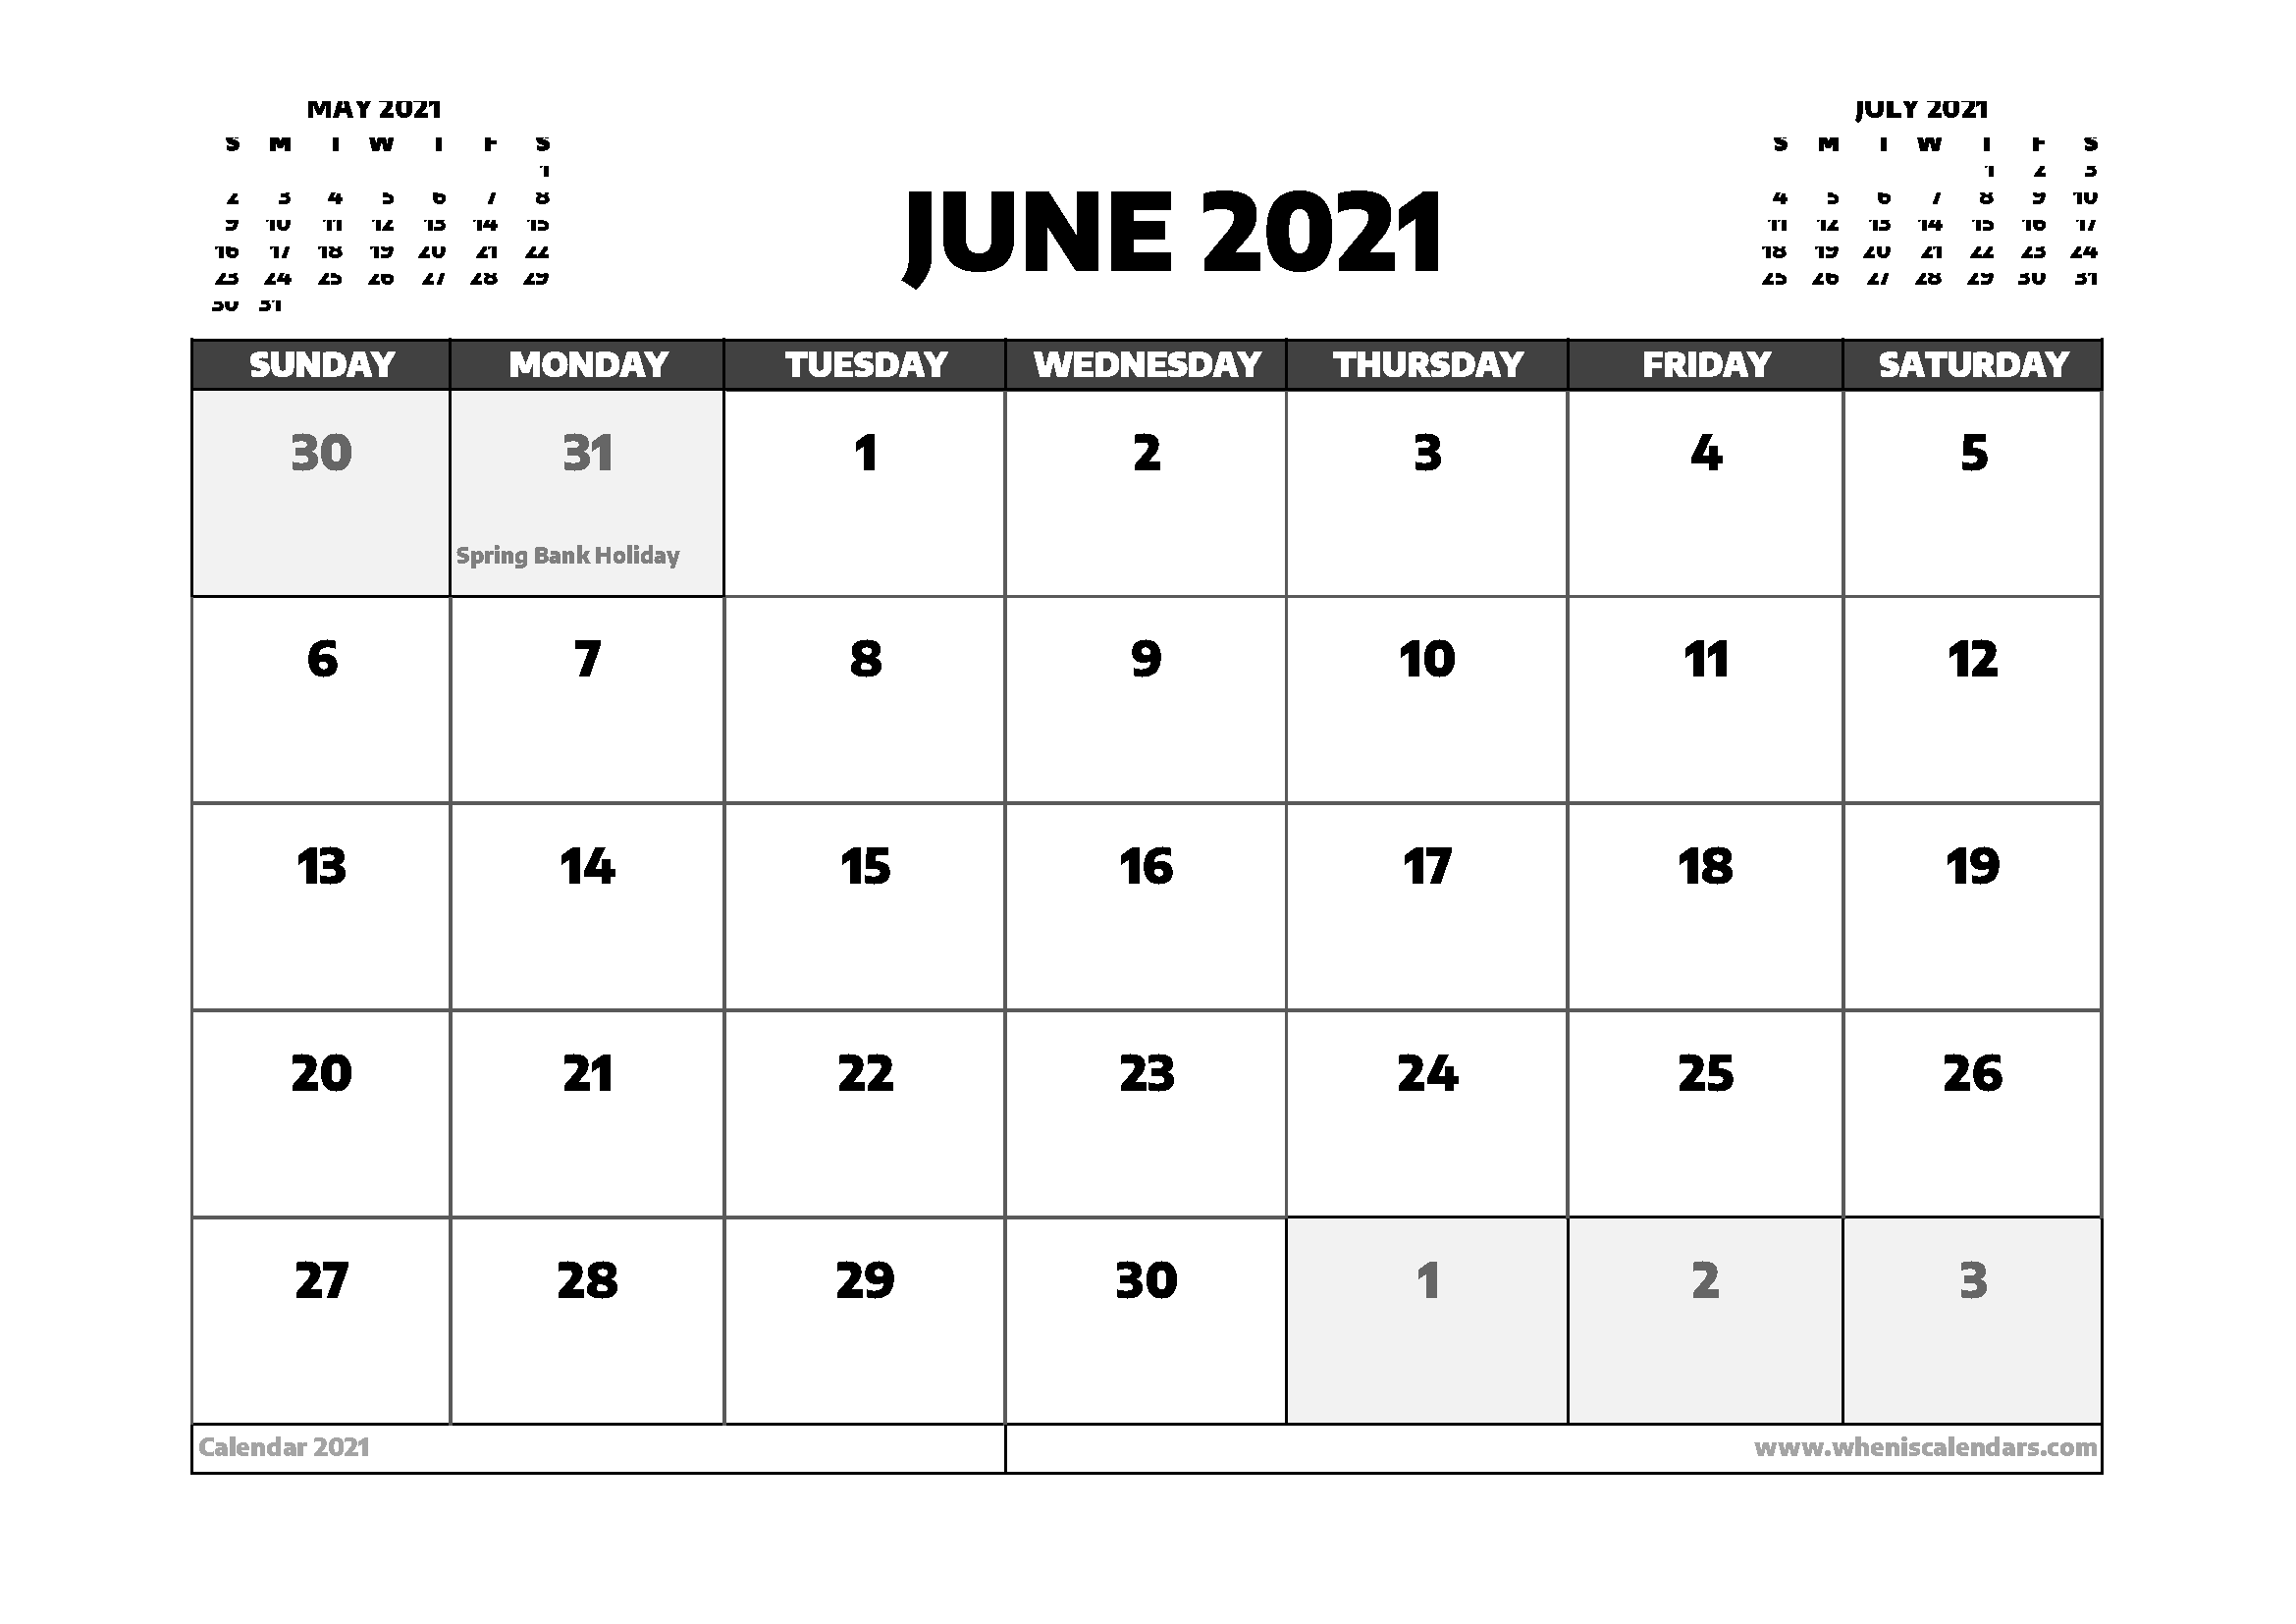 June 2021 Calendar Uk With Holidays In 2020 Calendar Uk 2021 Calendar Calendar Australia